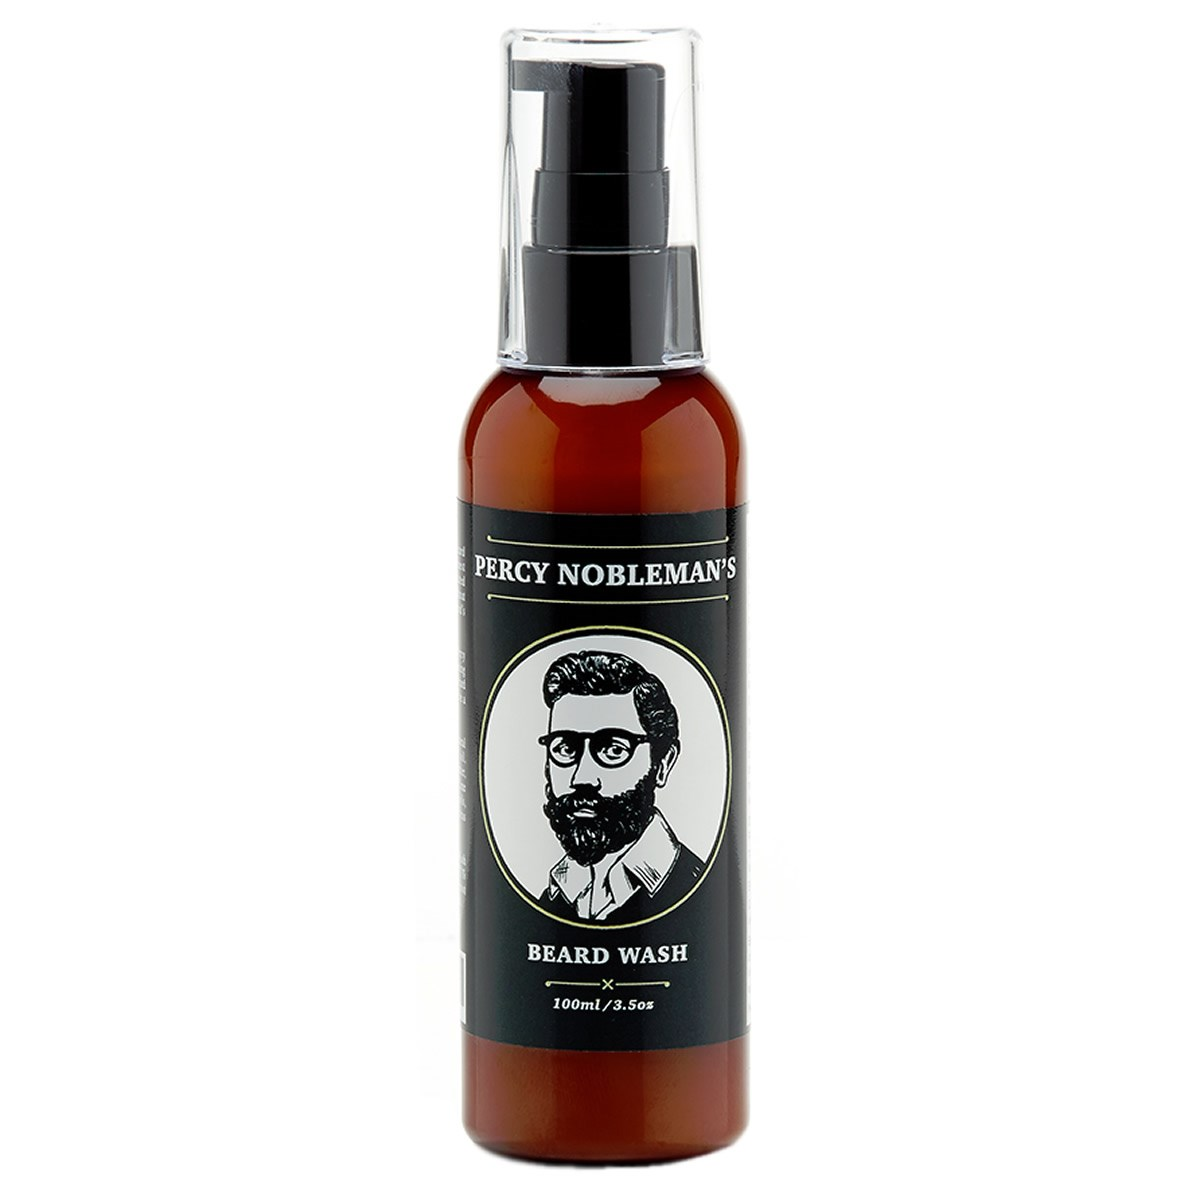 Percy Nobleman's Beard Wash